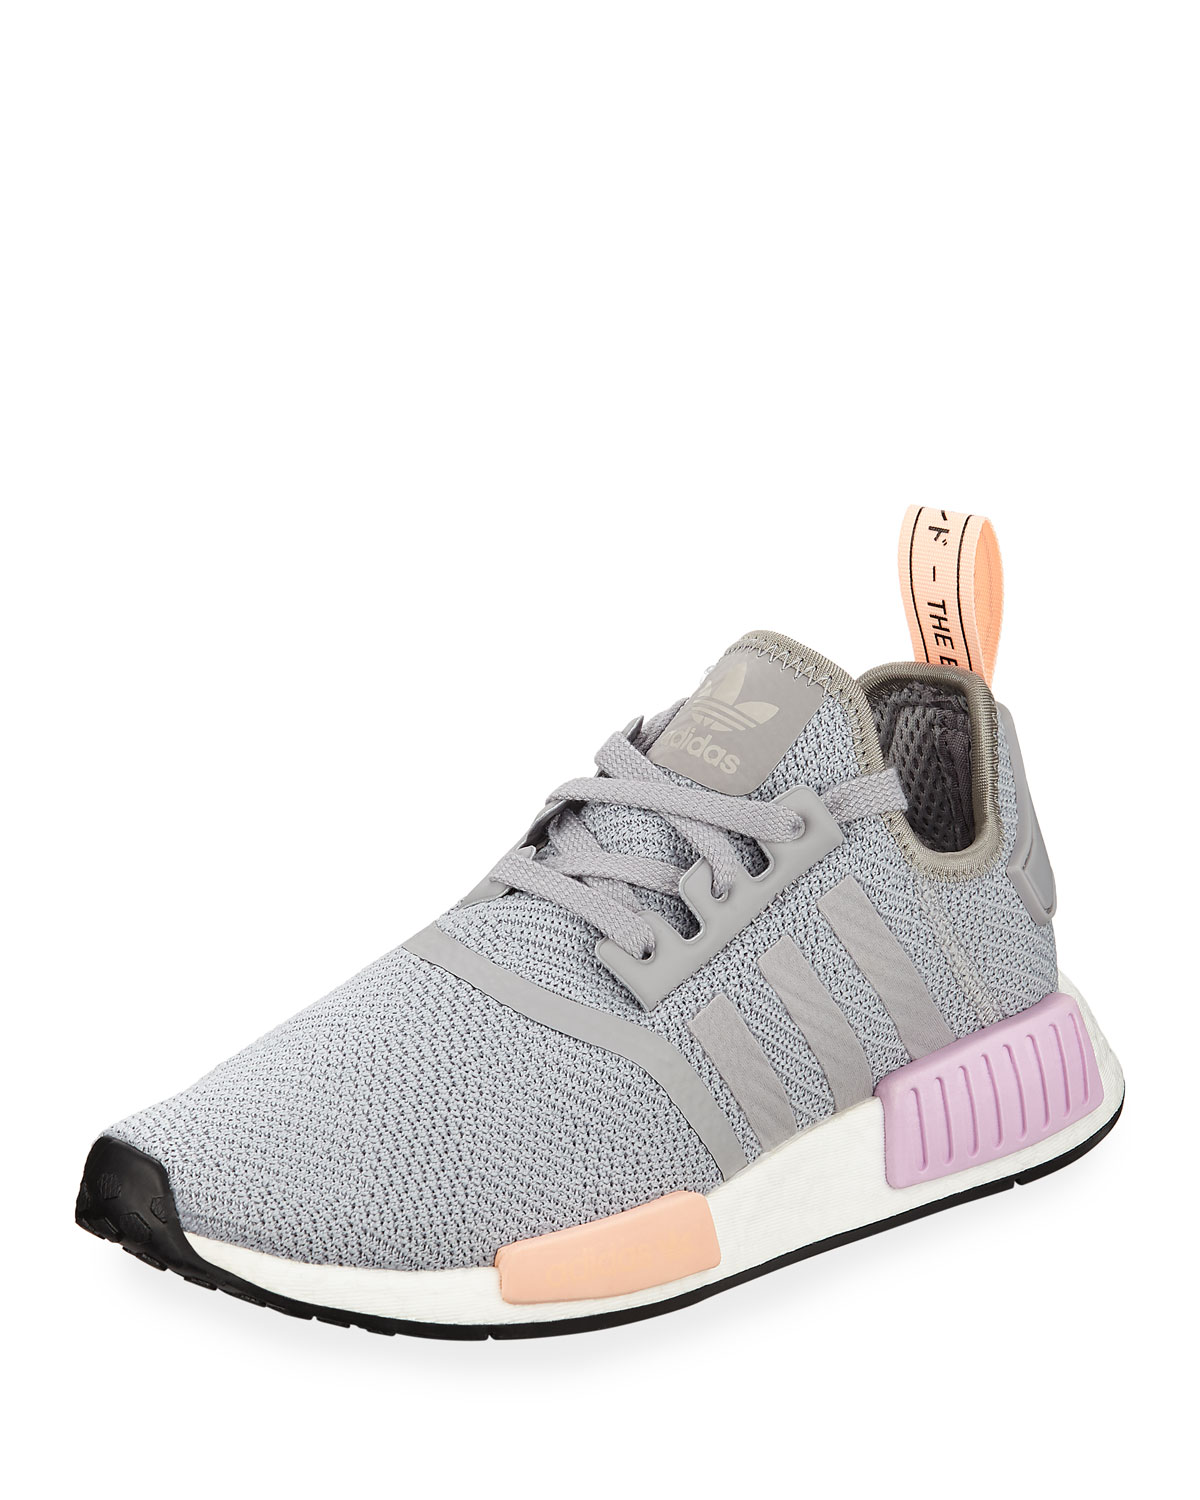 dbfb17ca2d4 Adidas Women s NMD R1 Primeknit Sneakers